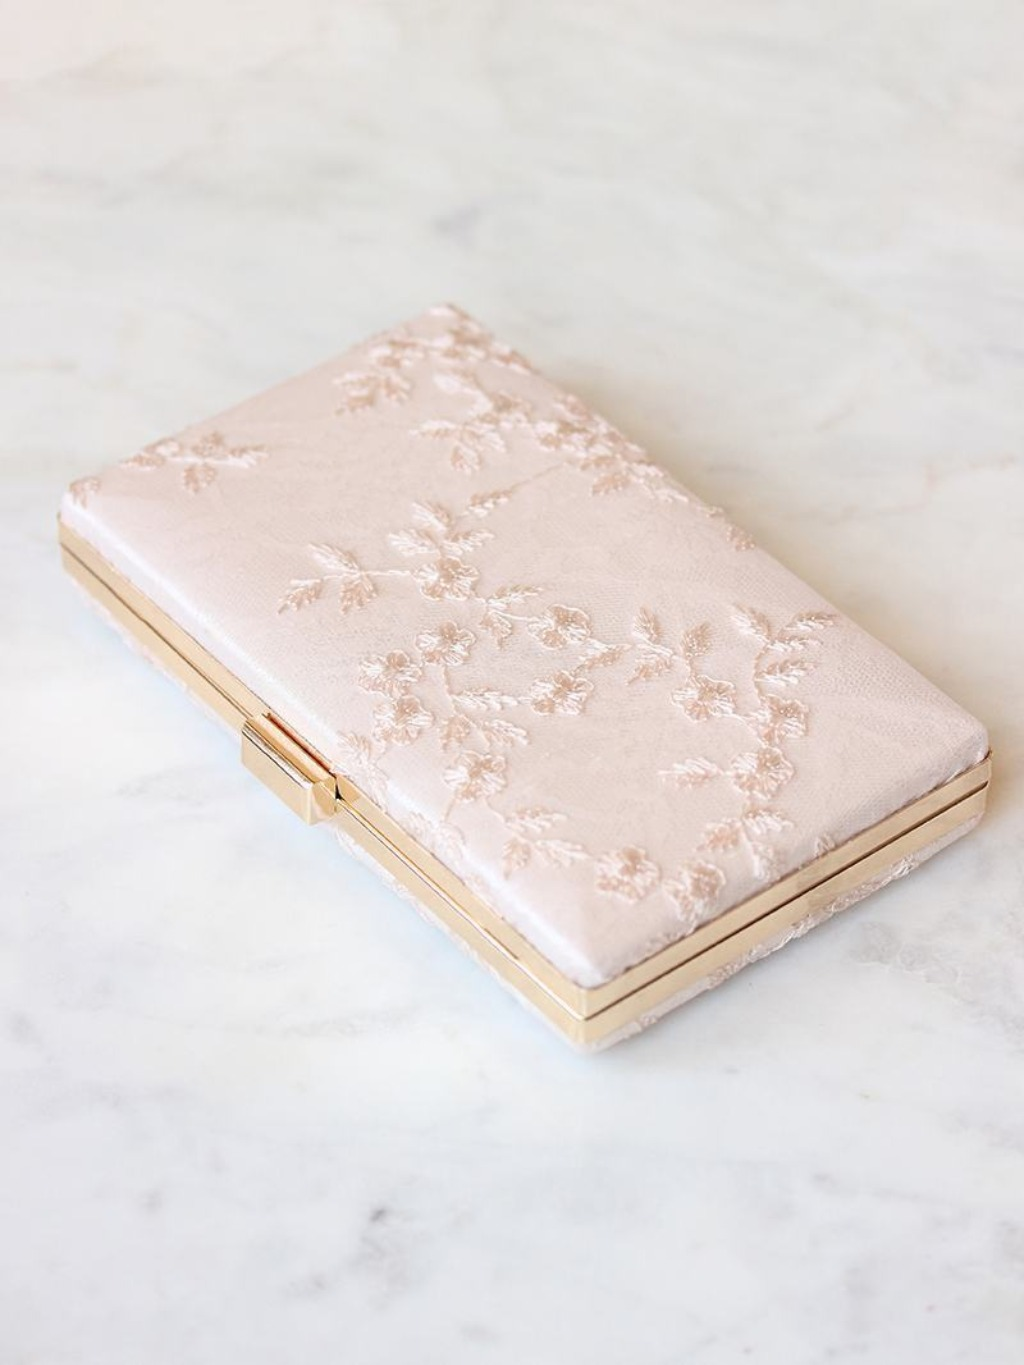 Darling, feminine lace on a blushy satin cover. Refined clutches for any occasion.